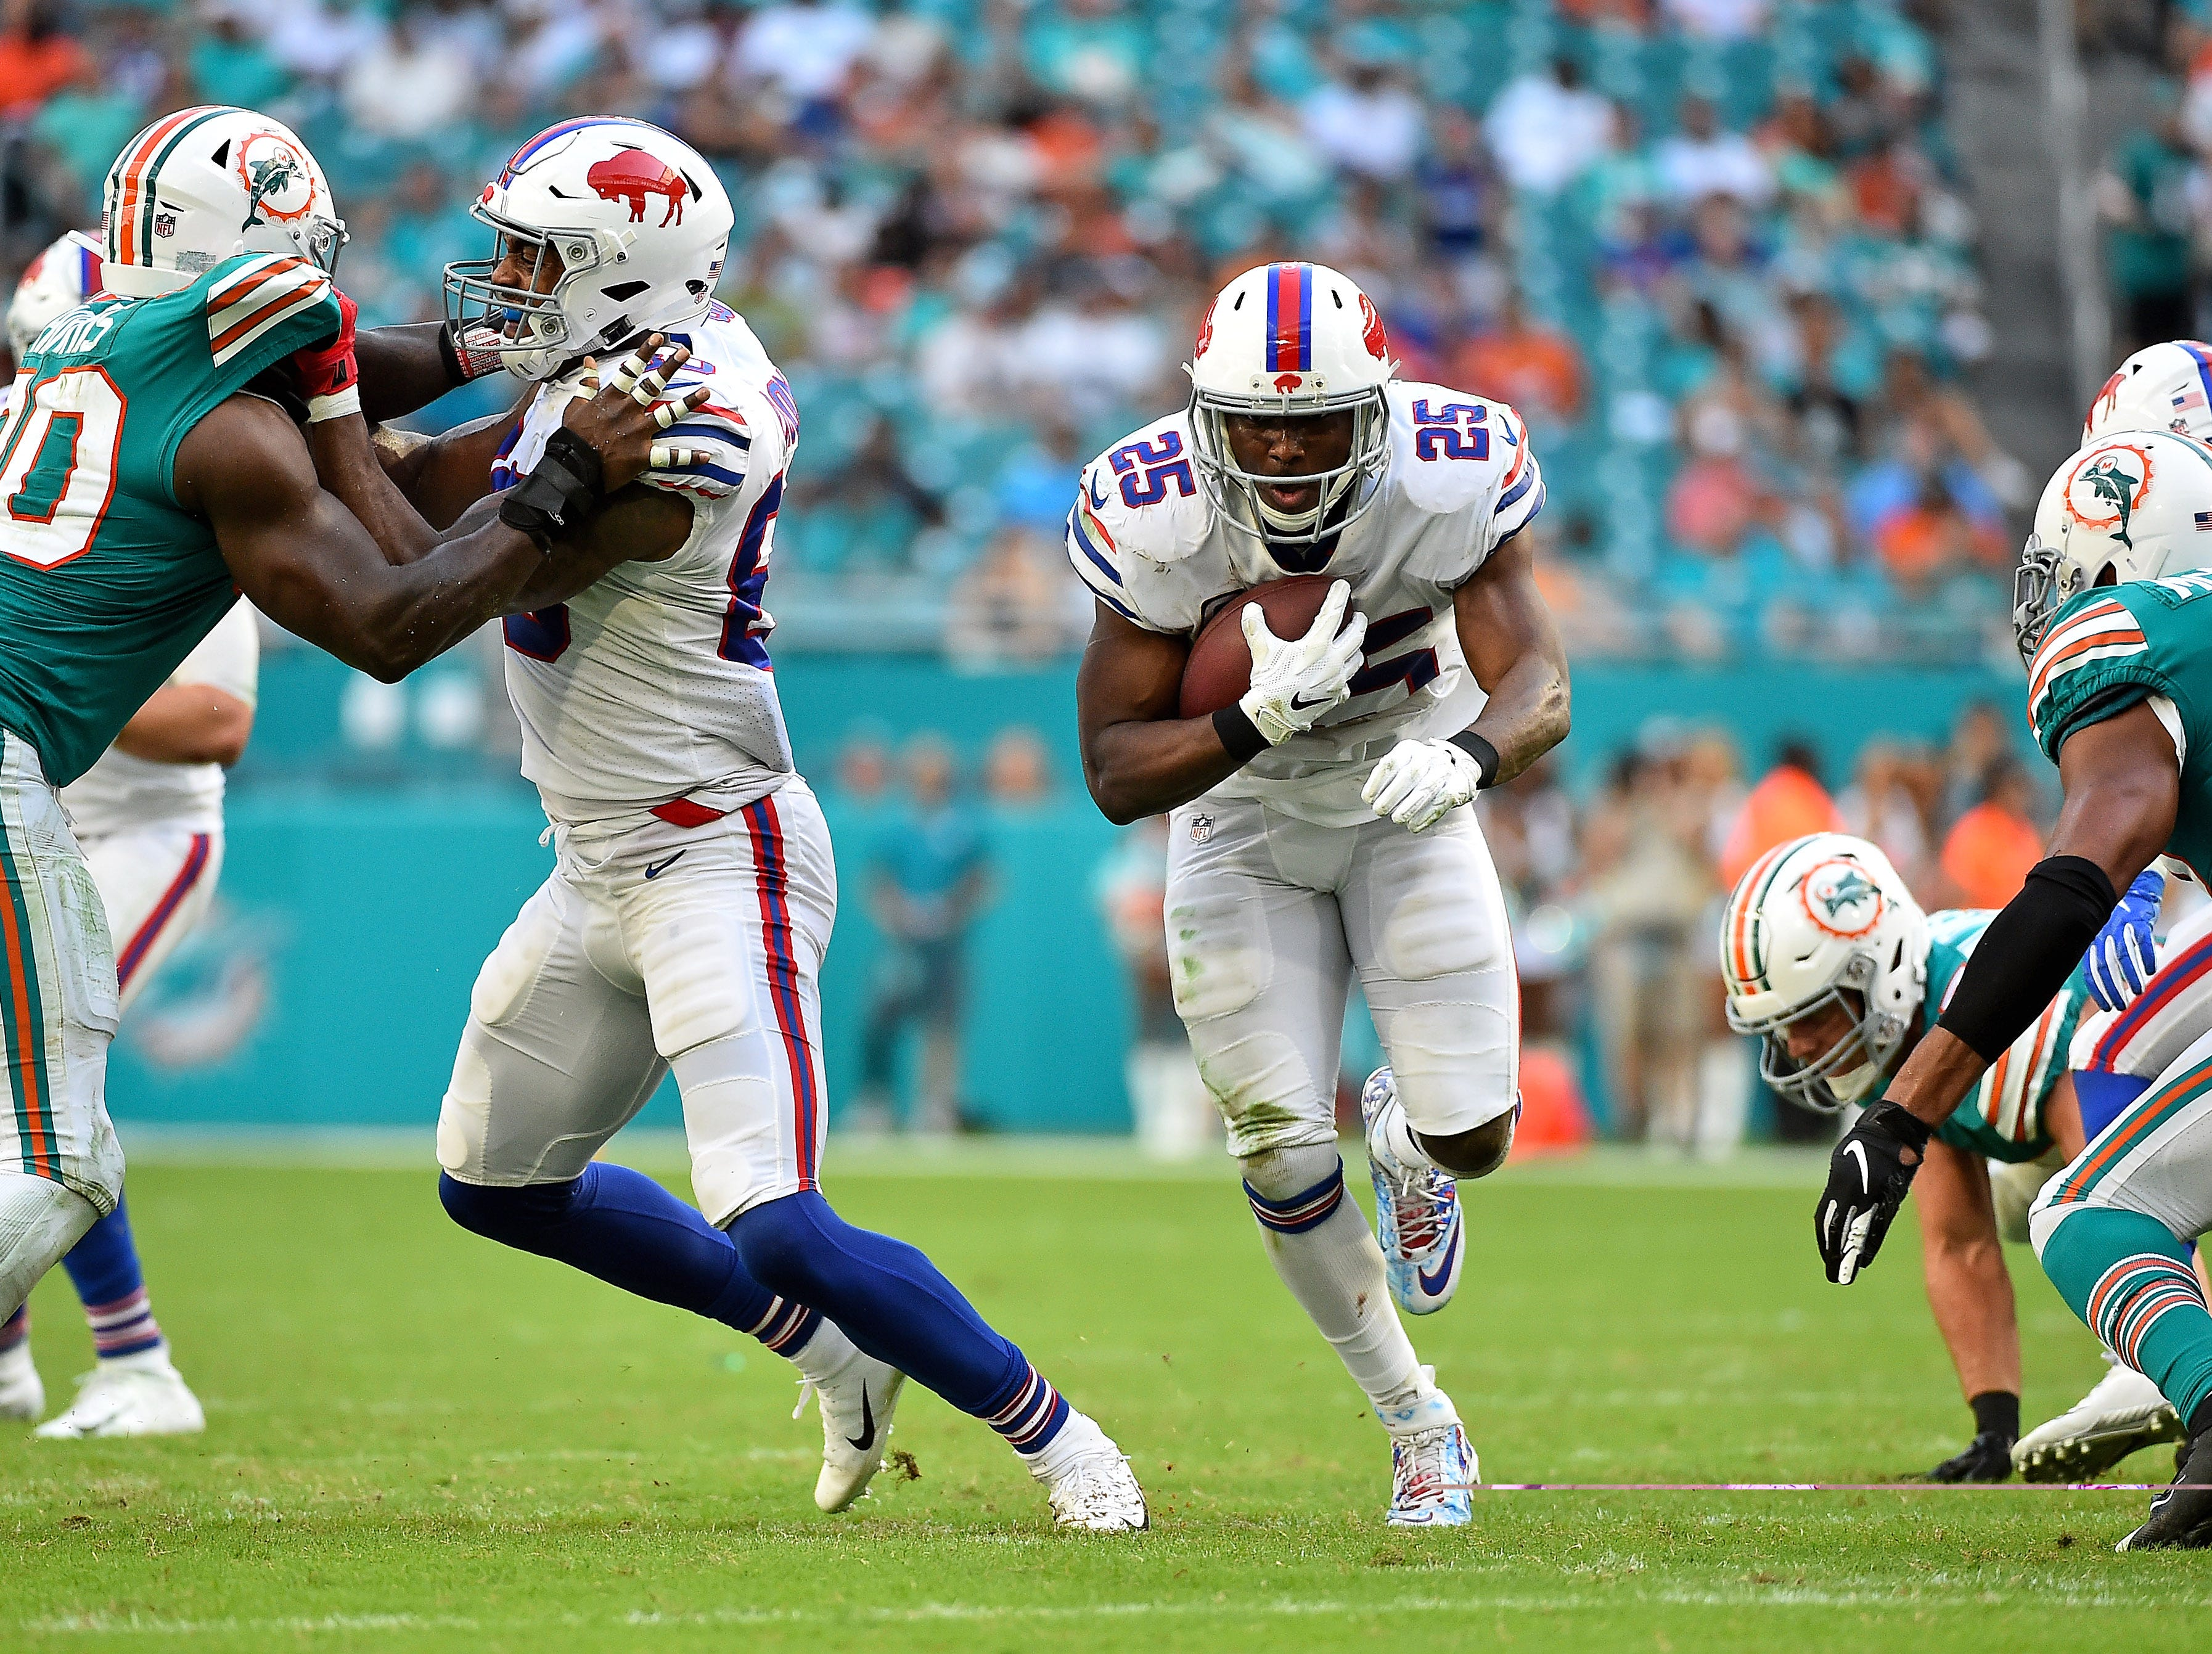 Dec 2, 2018; Miami Gardens, FL, USA; Buffalo Bills running back LeSean McCoy (25) carries the ball against the Miami Dolphins during the second half at Hard Rock Stadium. Mandatory Credit: Jasen Vinlove-USA TODAY Sports